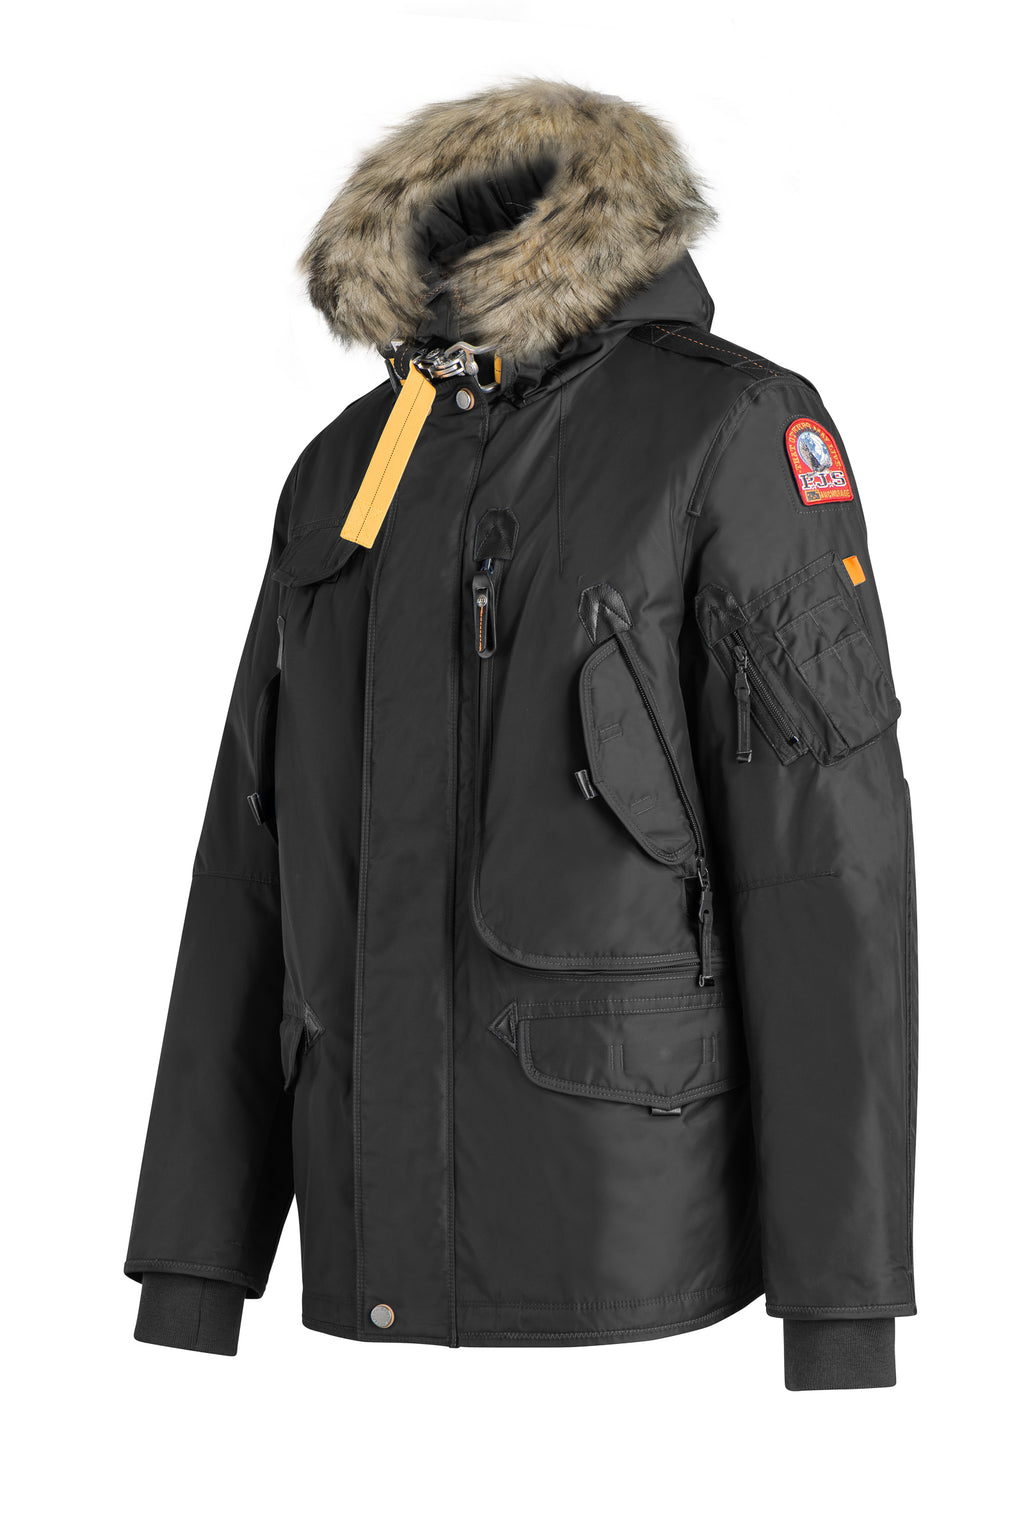 Parajumpers Right Hand Jacket in Anthracite